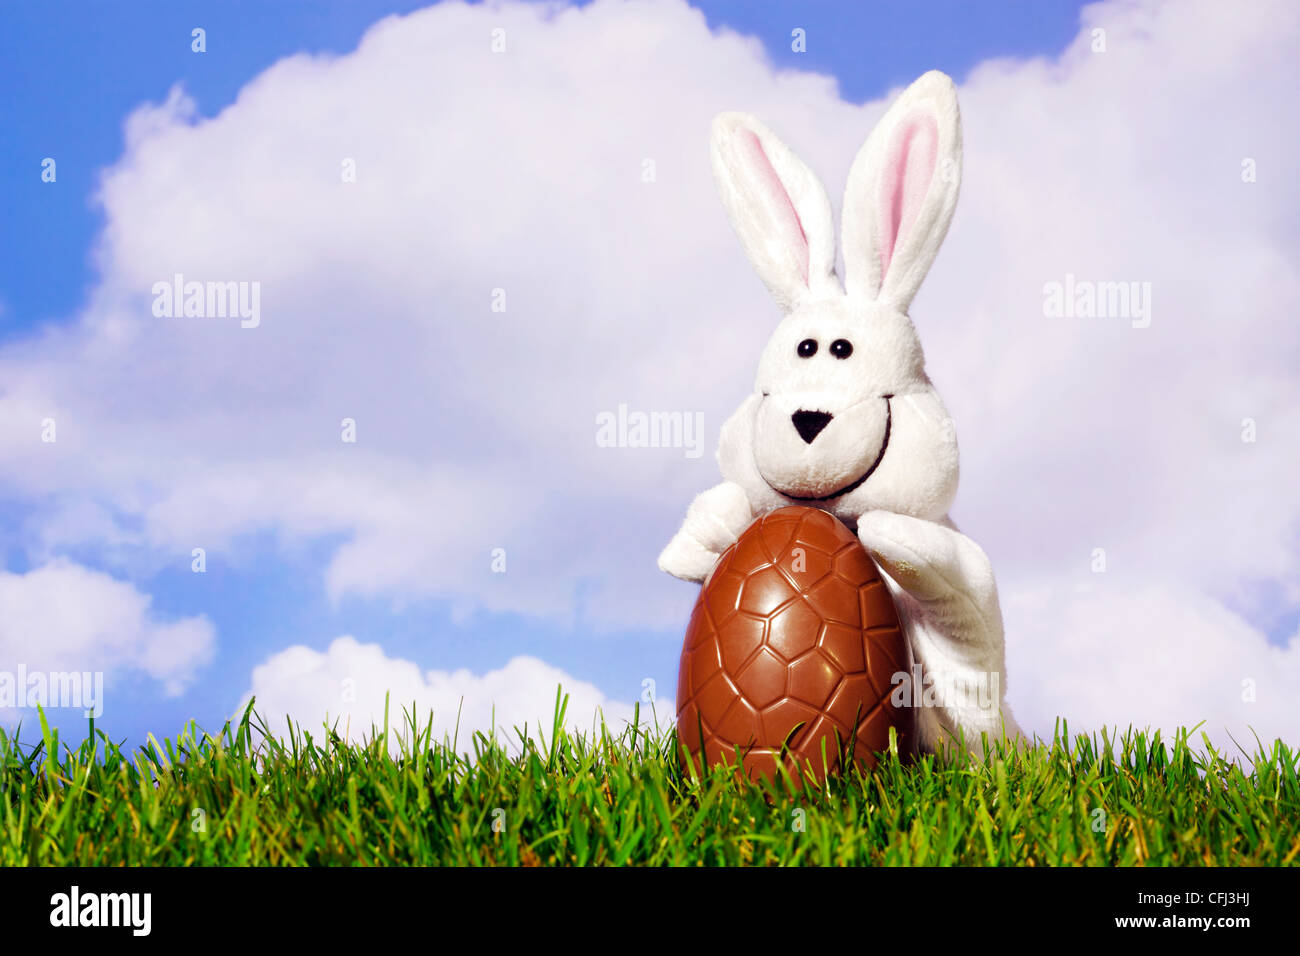 Fun photo of a white easter bunny puppet holding a large chocolate egg on grass with a blue cloudy sky background. Stock Photo